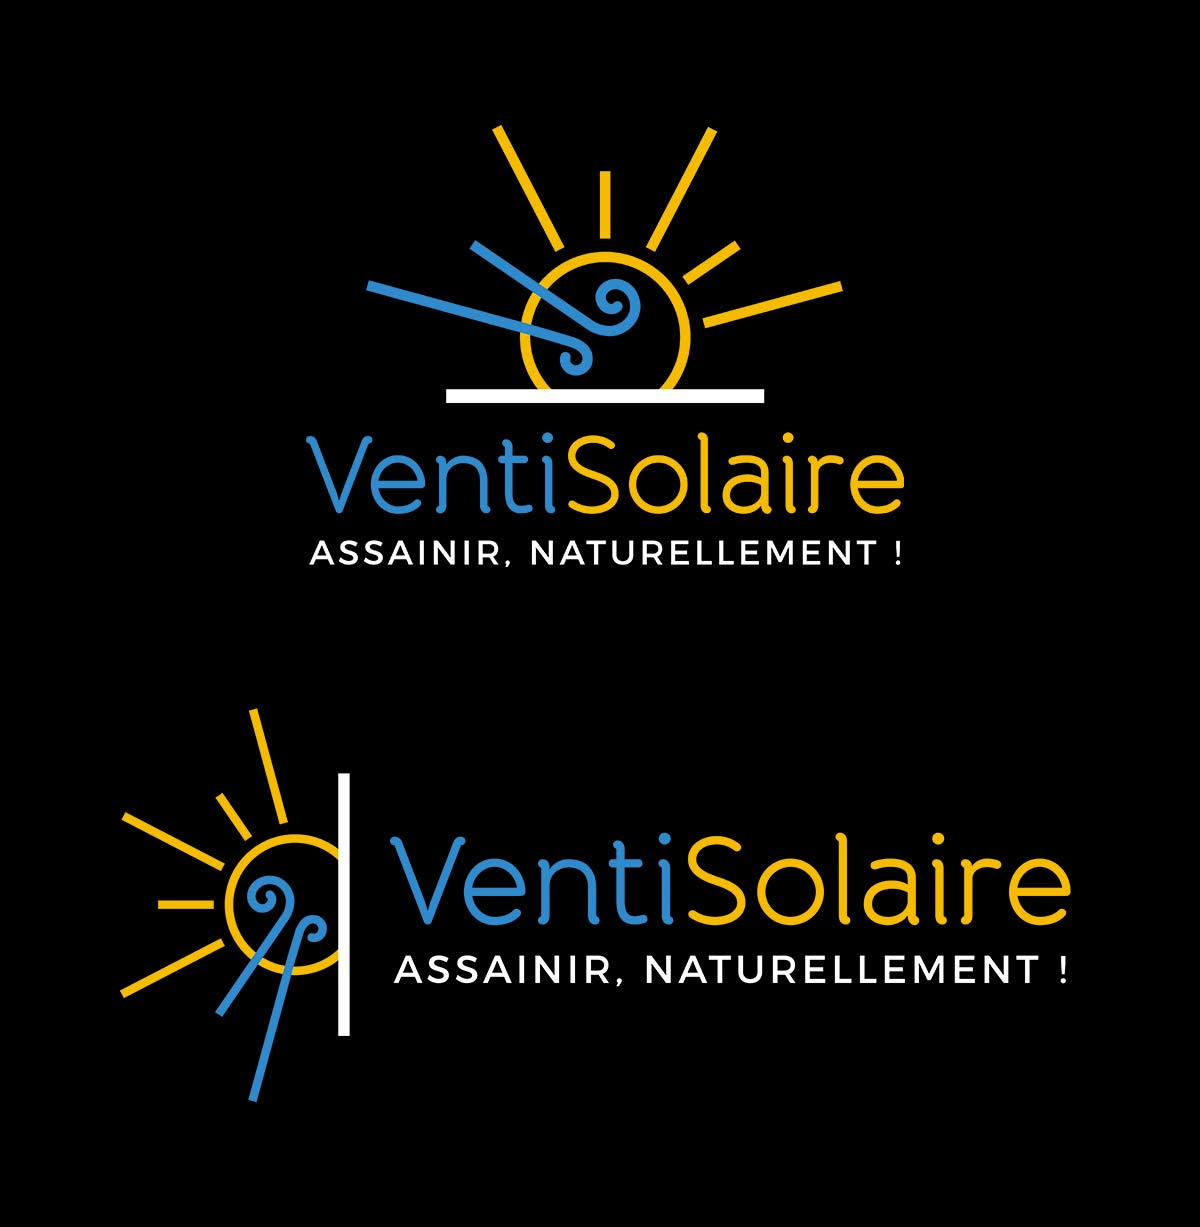 ventisolaire-logo-creation